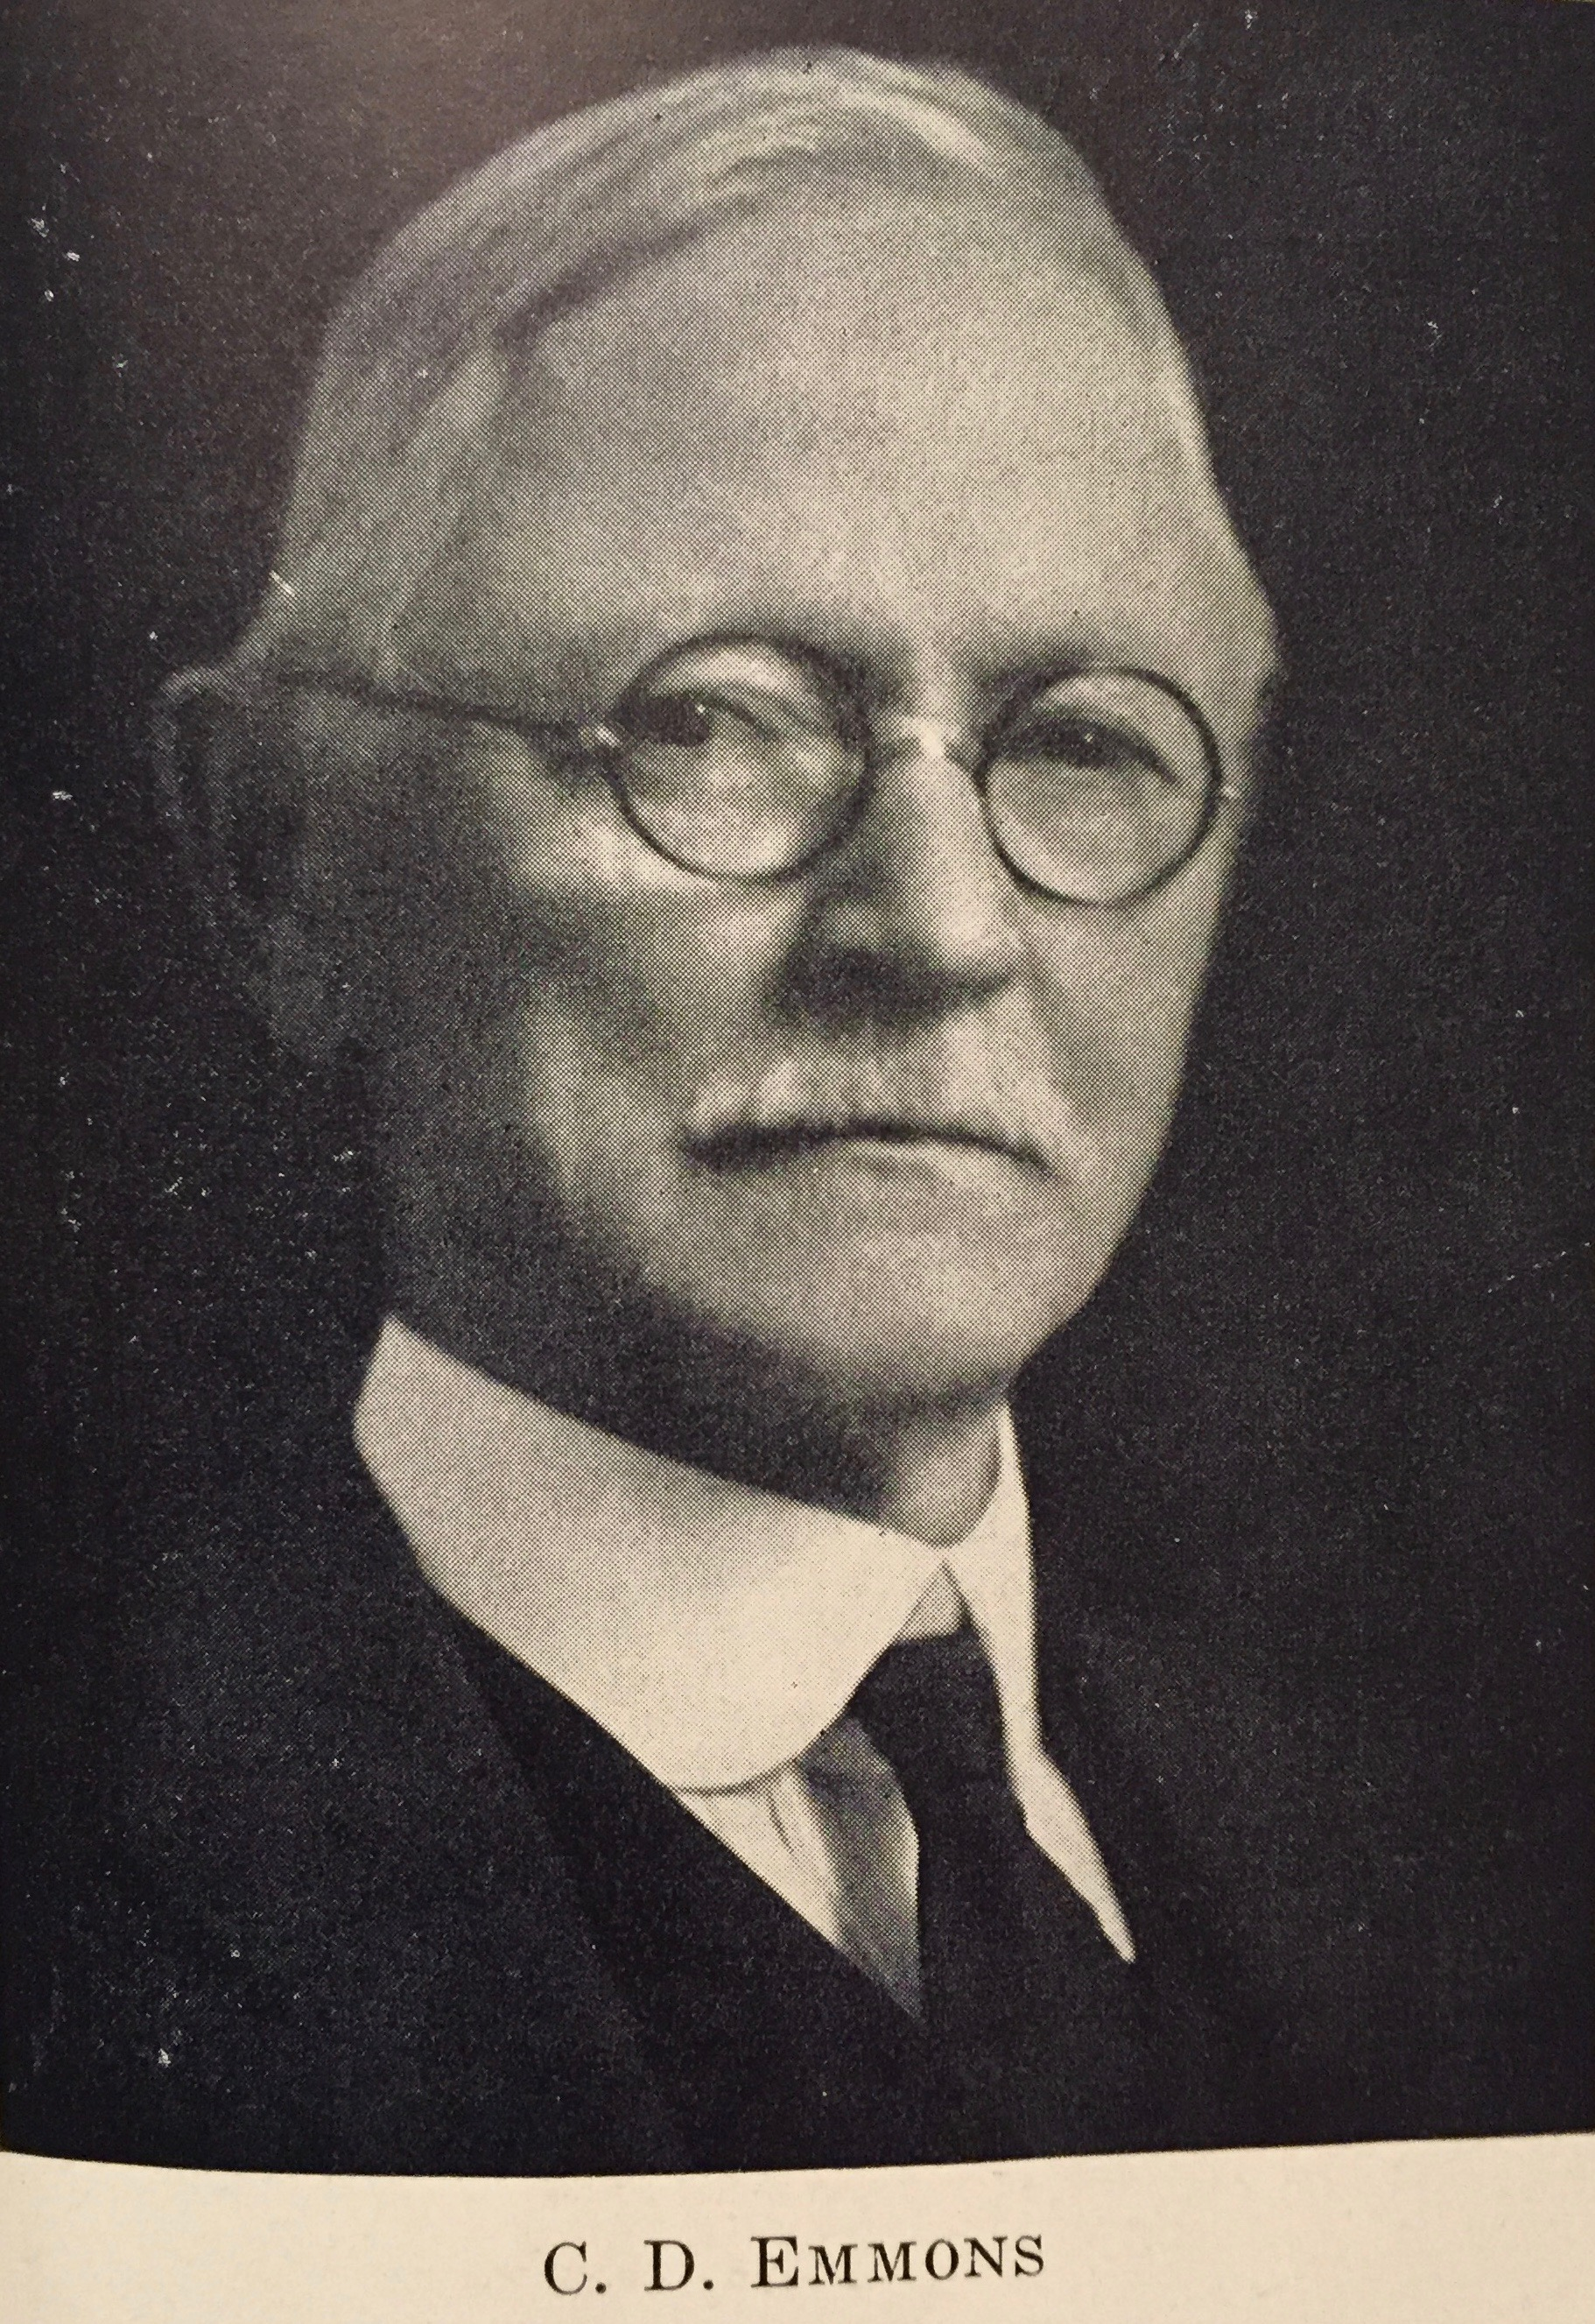 Carlton D. Emmons, first president of the Emmons-Hawkins Hardware Company